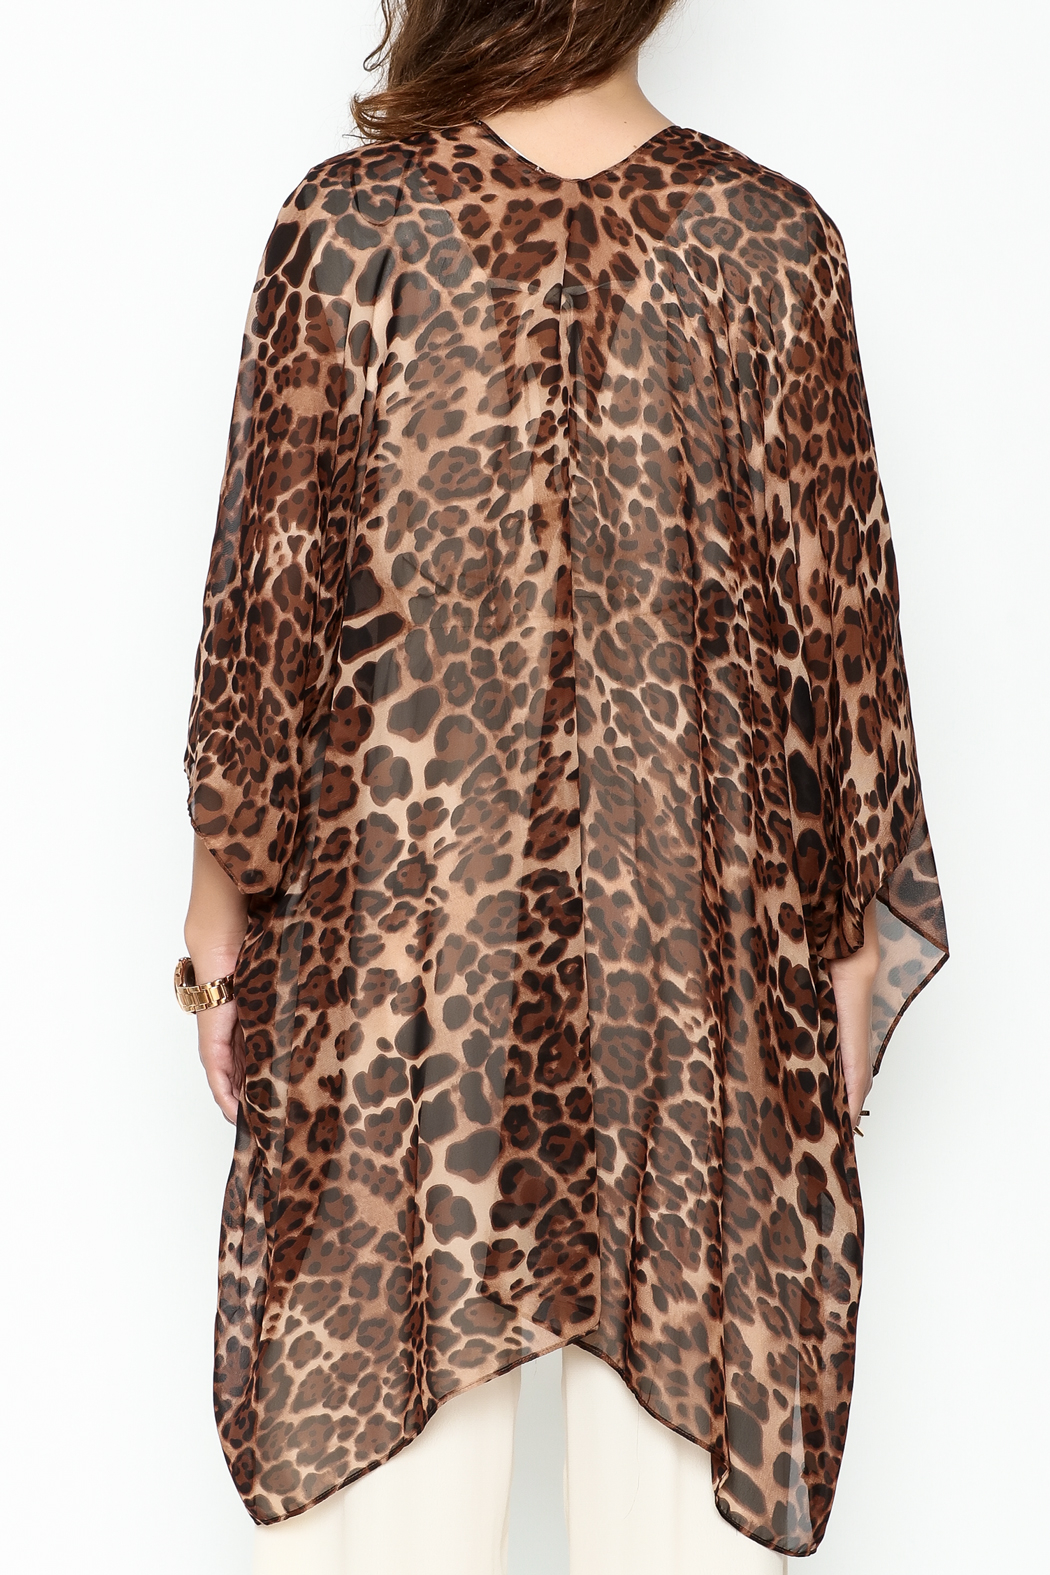 Ellison Leopard Print Kimono from New York City by Dor L'Dor ...